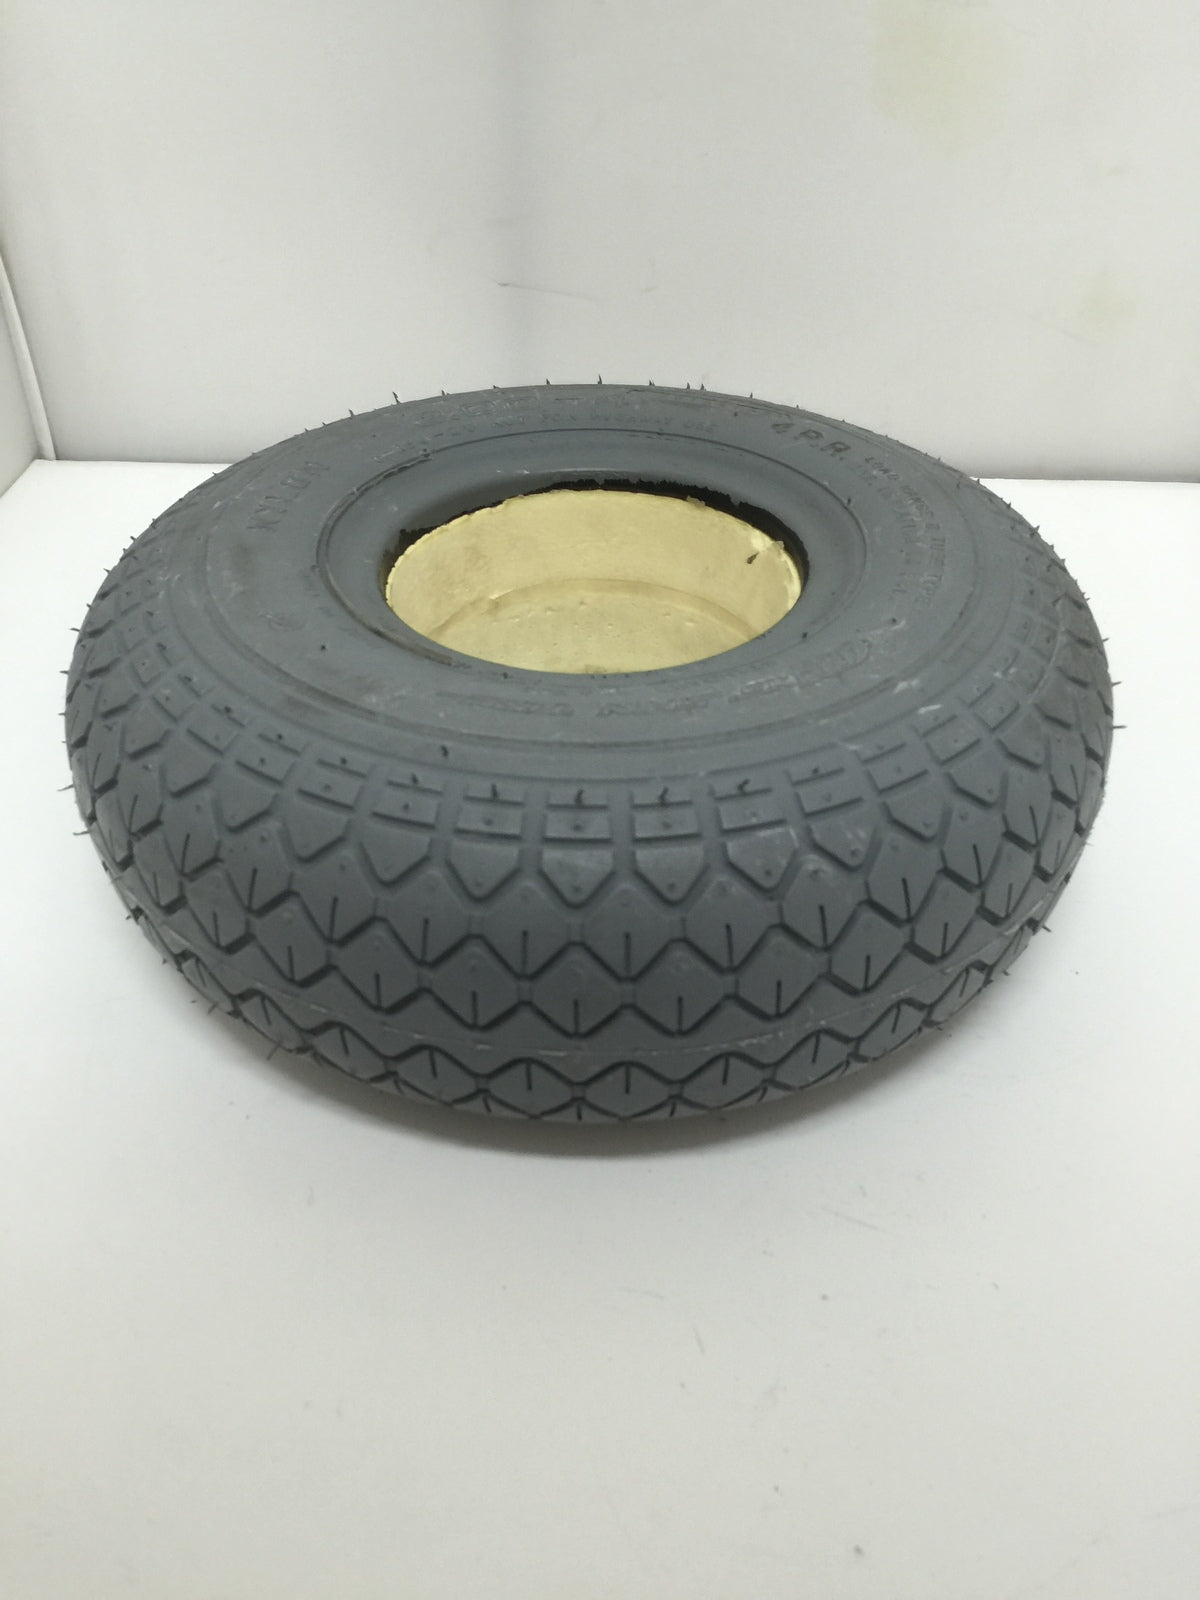 Foam filled tire of mobility scooter